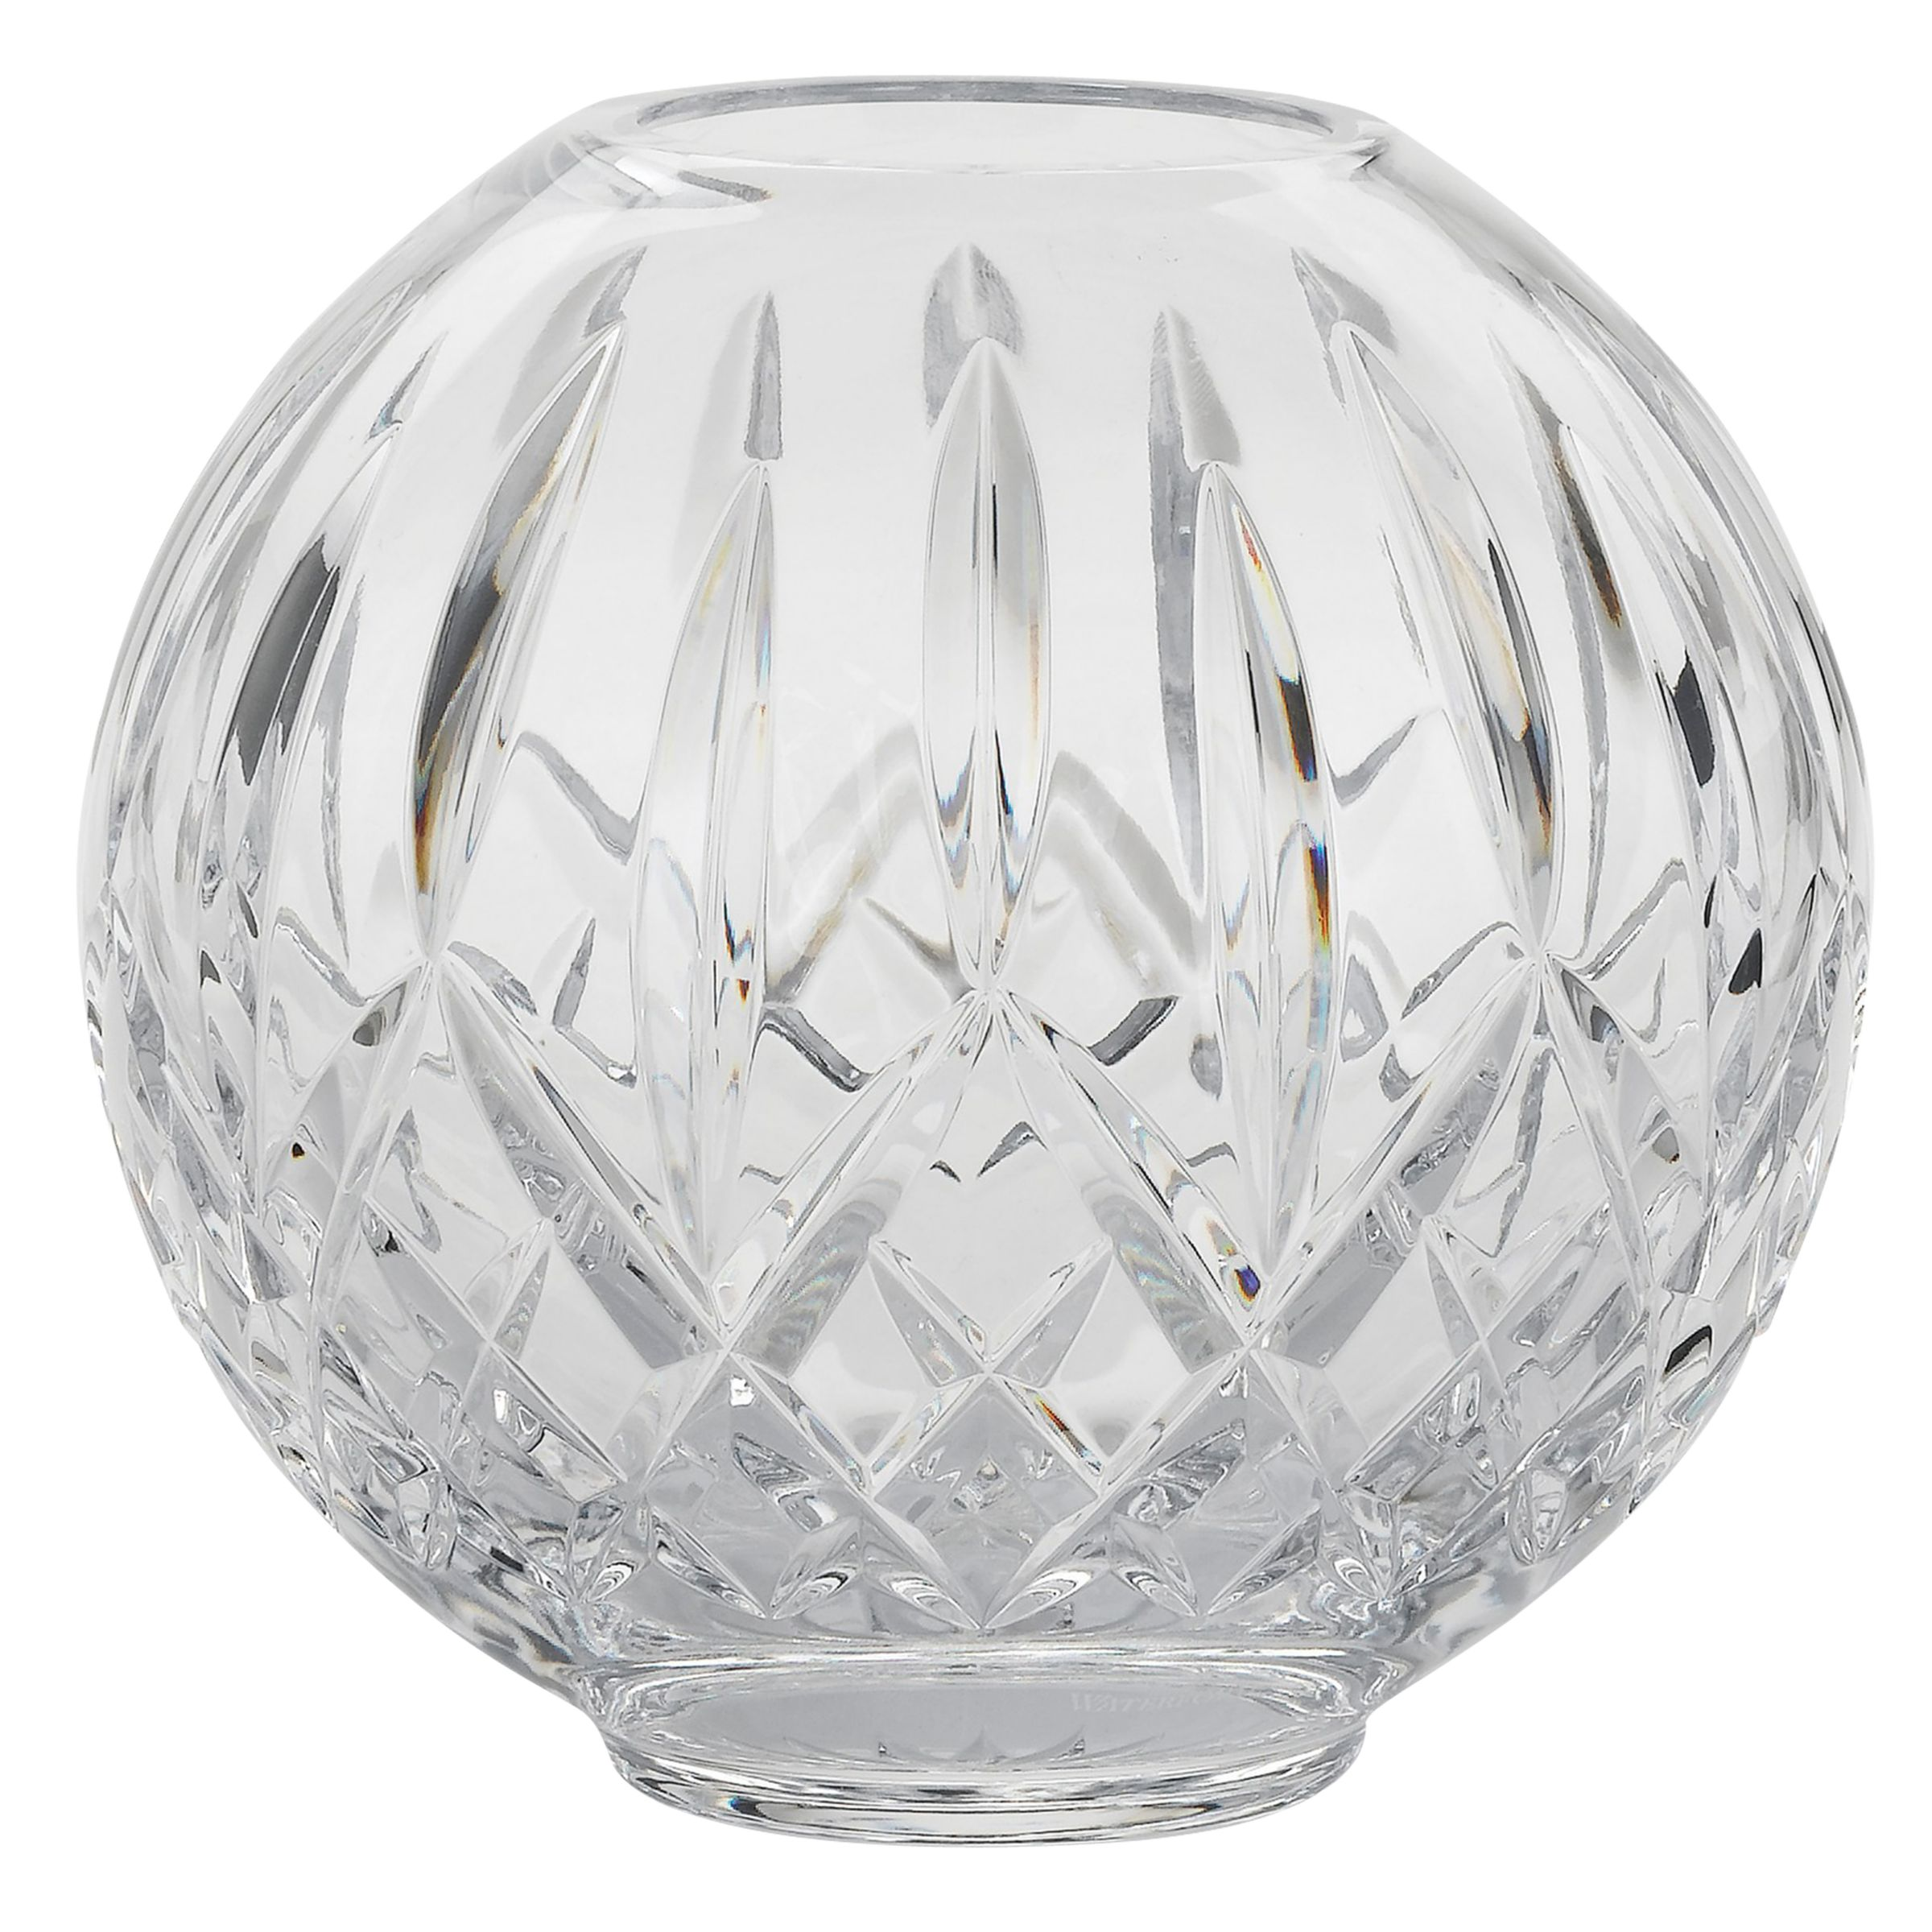 Waterford Waterford Lismore 15cm Rose Bowl, Clear